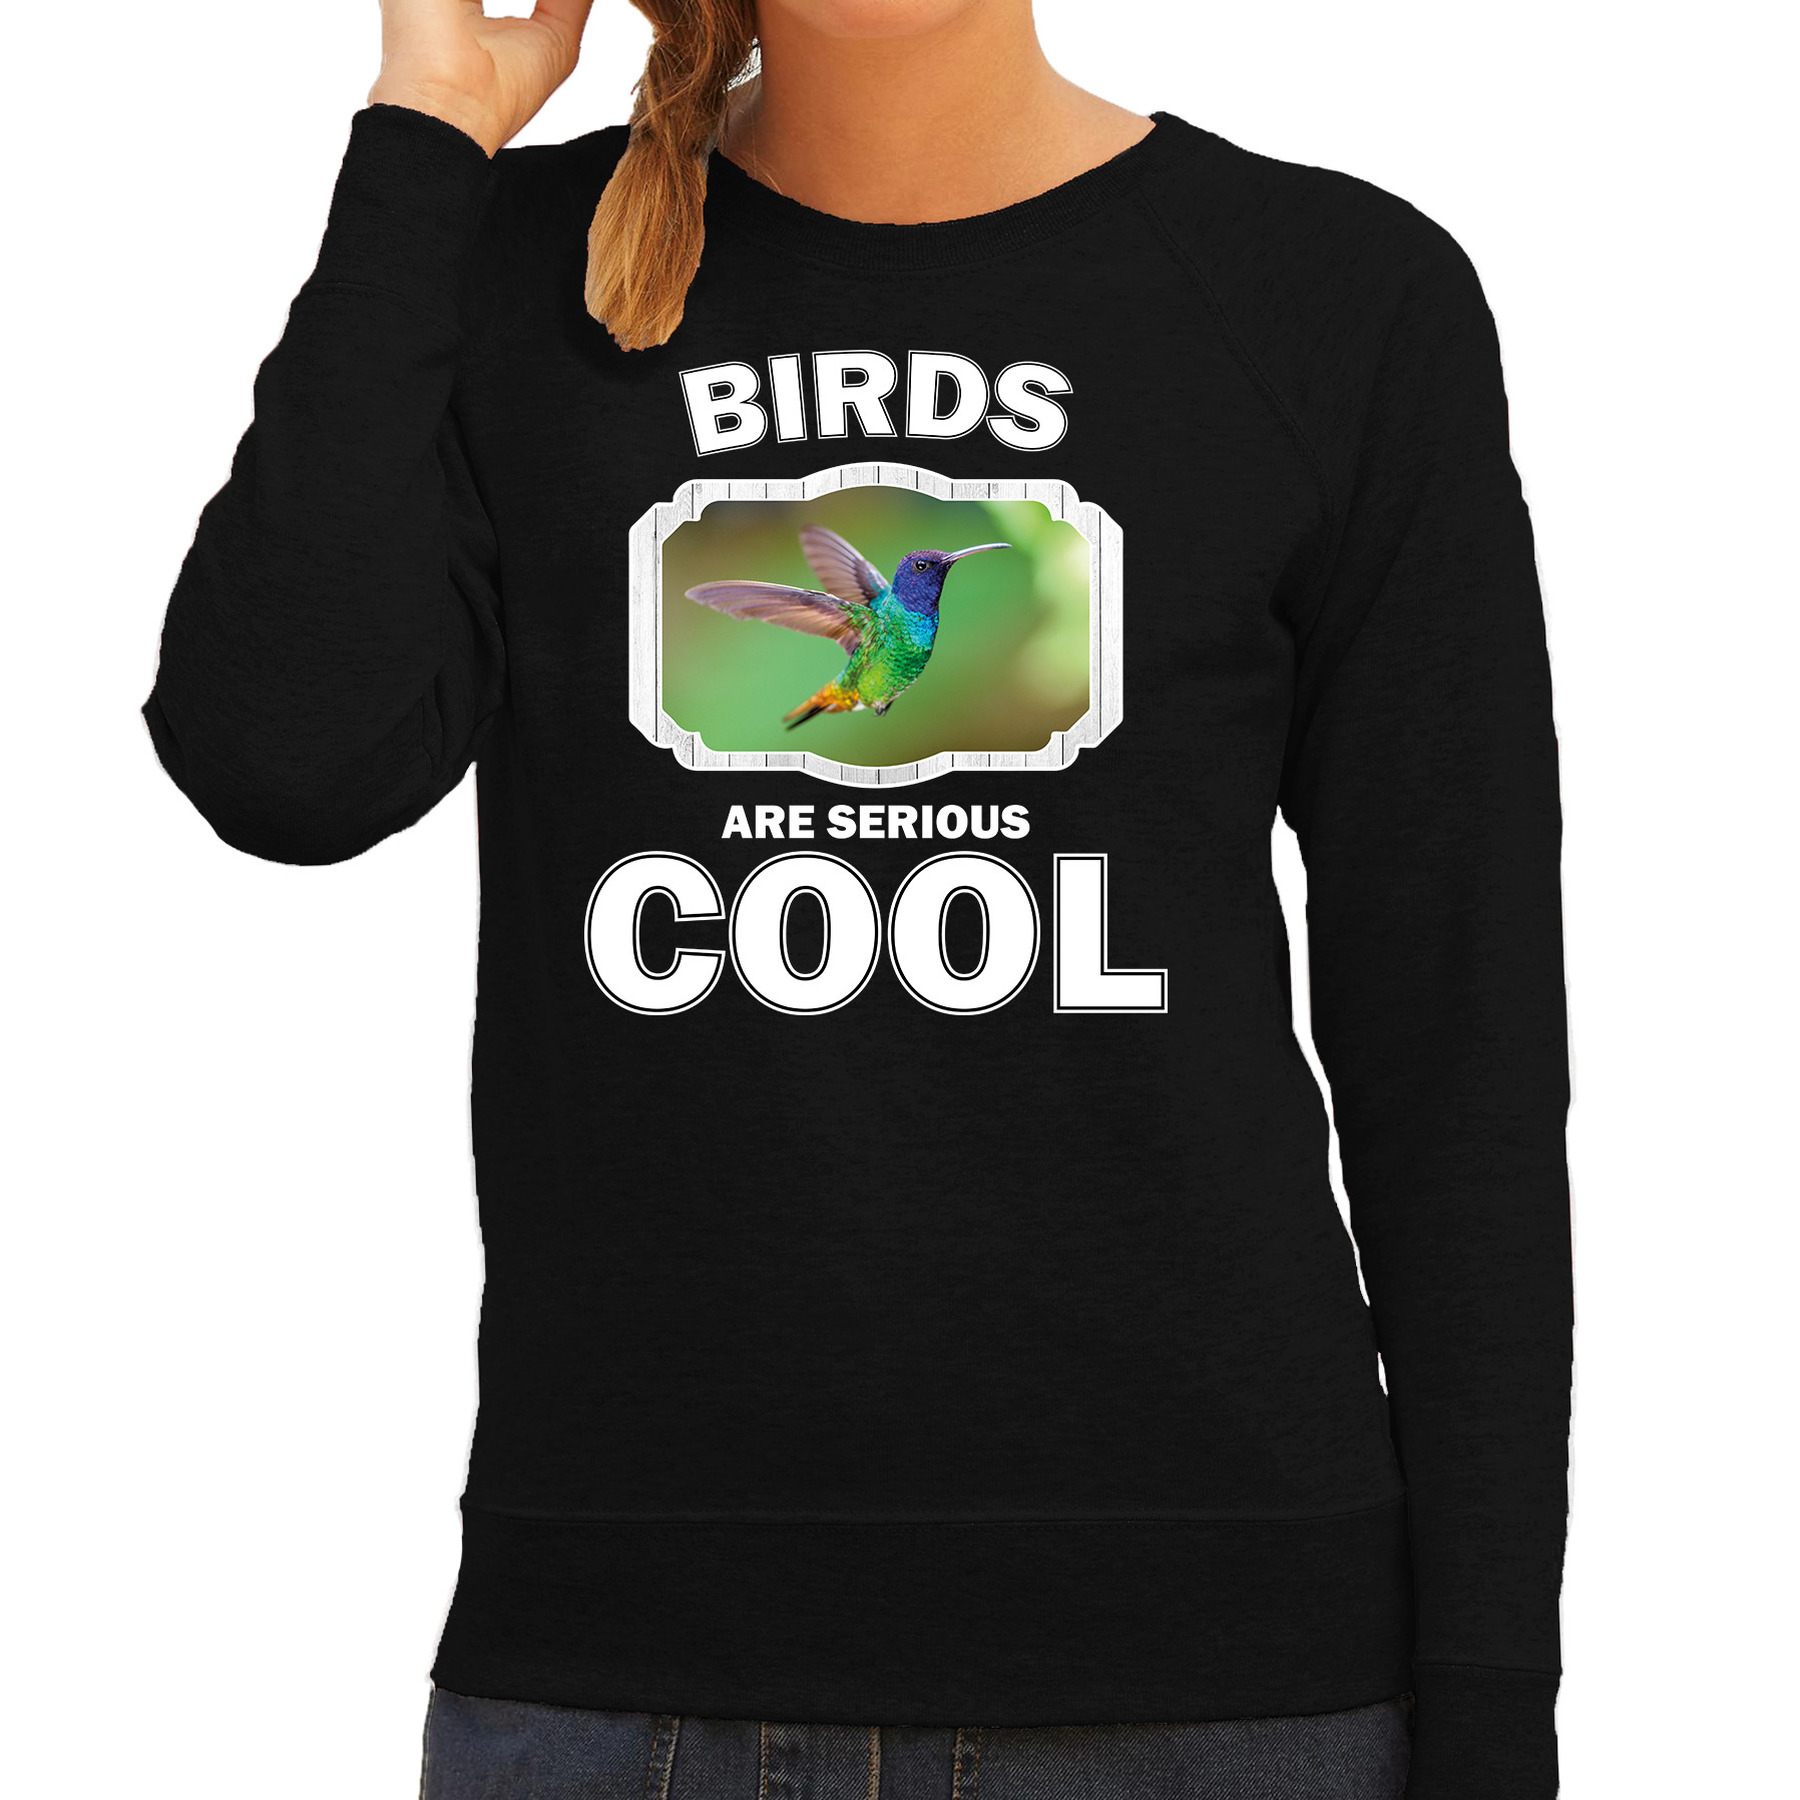 Sweater birds are serious cool zwart dames - vogels/ kolibrie vogel vliegend trui